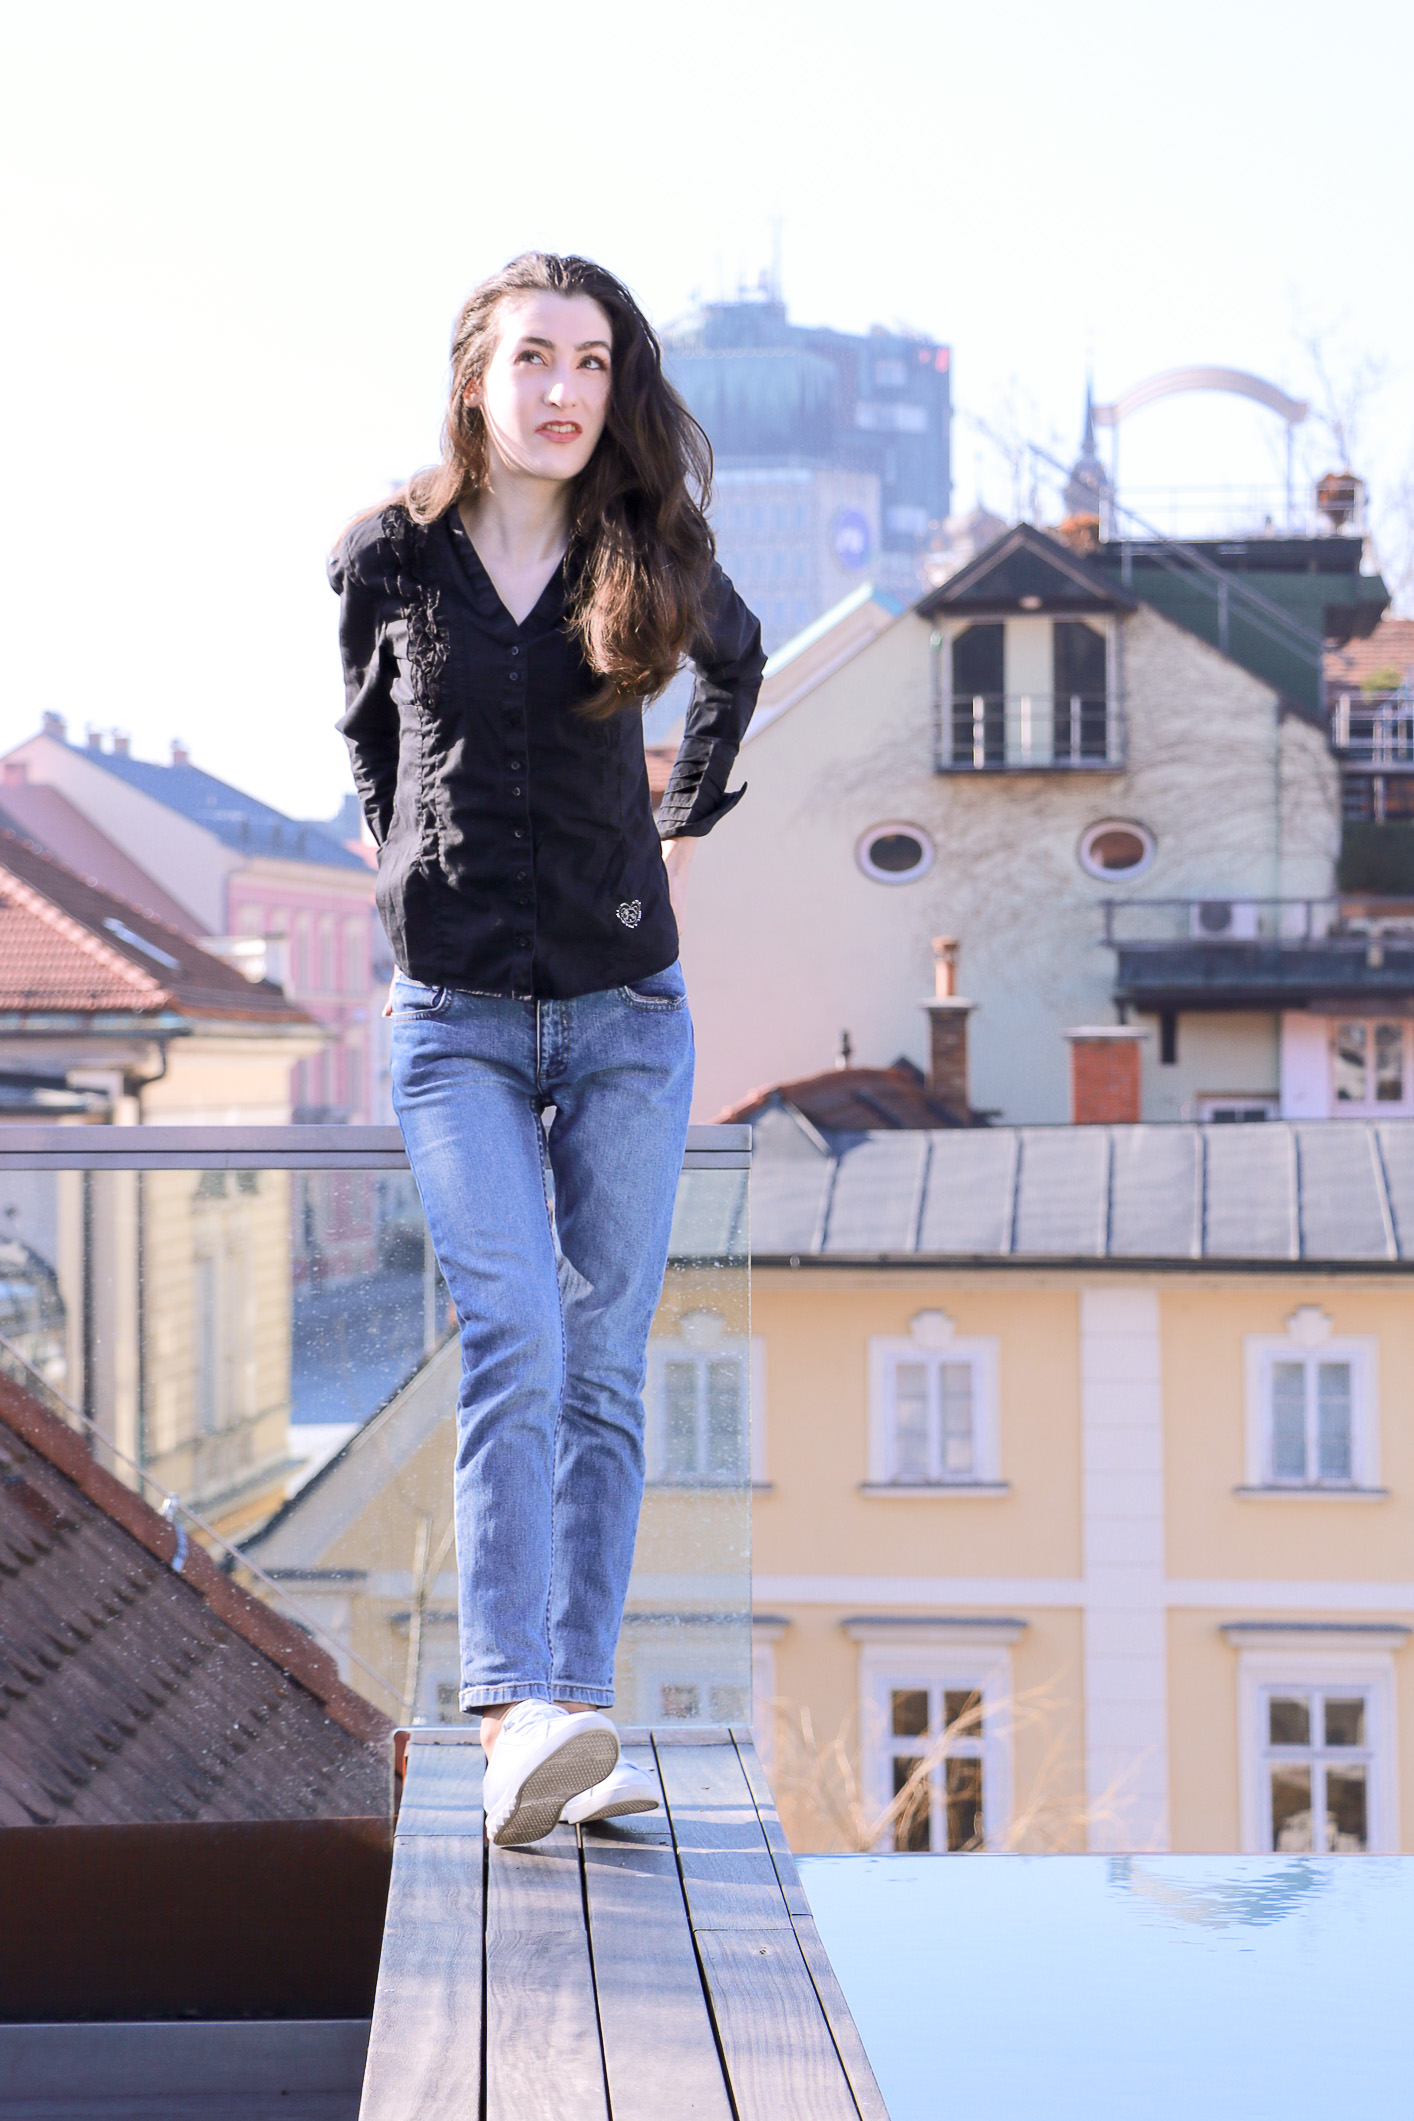 Fashion blogger Veronika Lipar of Brunette From Wall Street sharing how to wear mom jeans